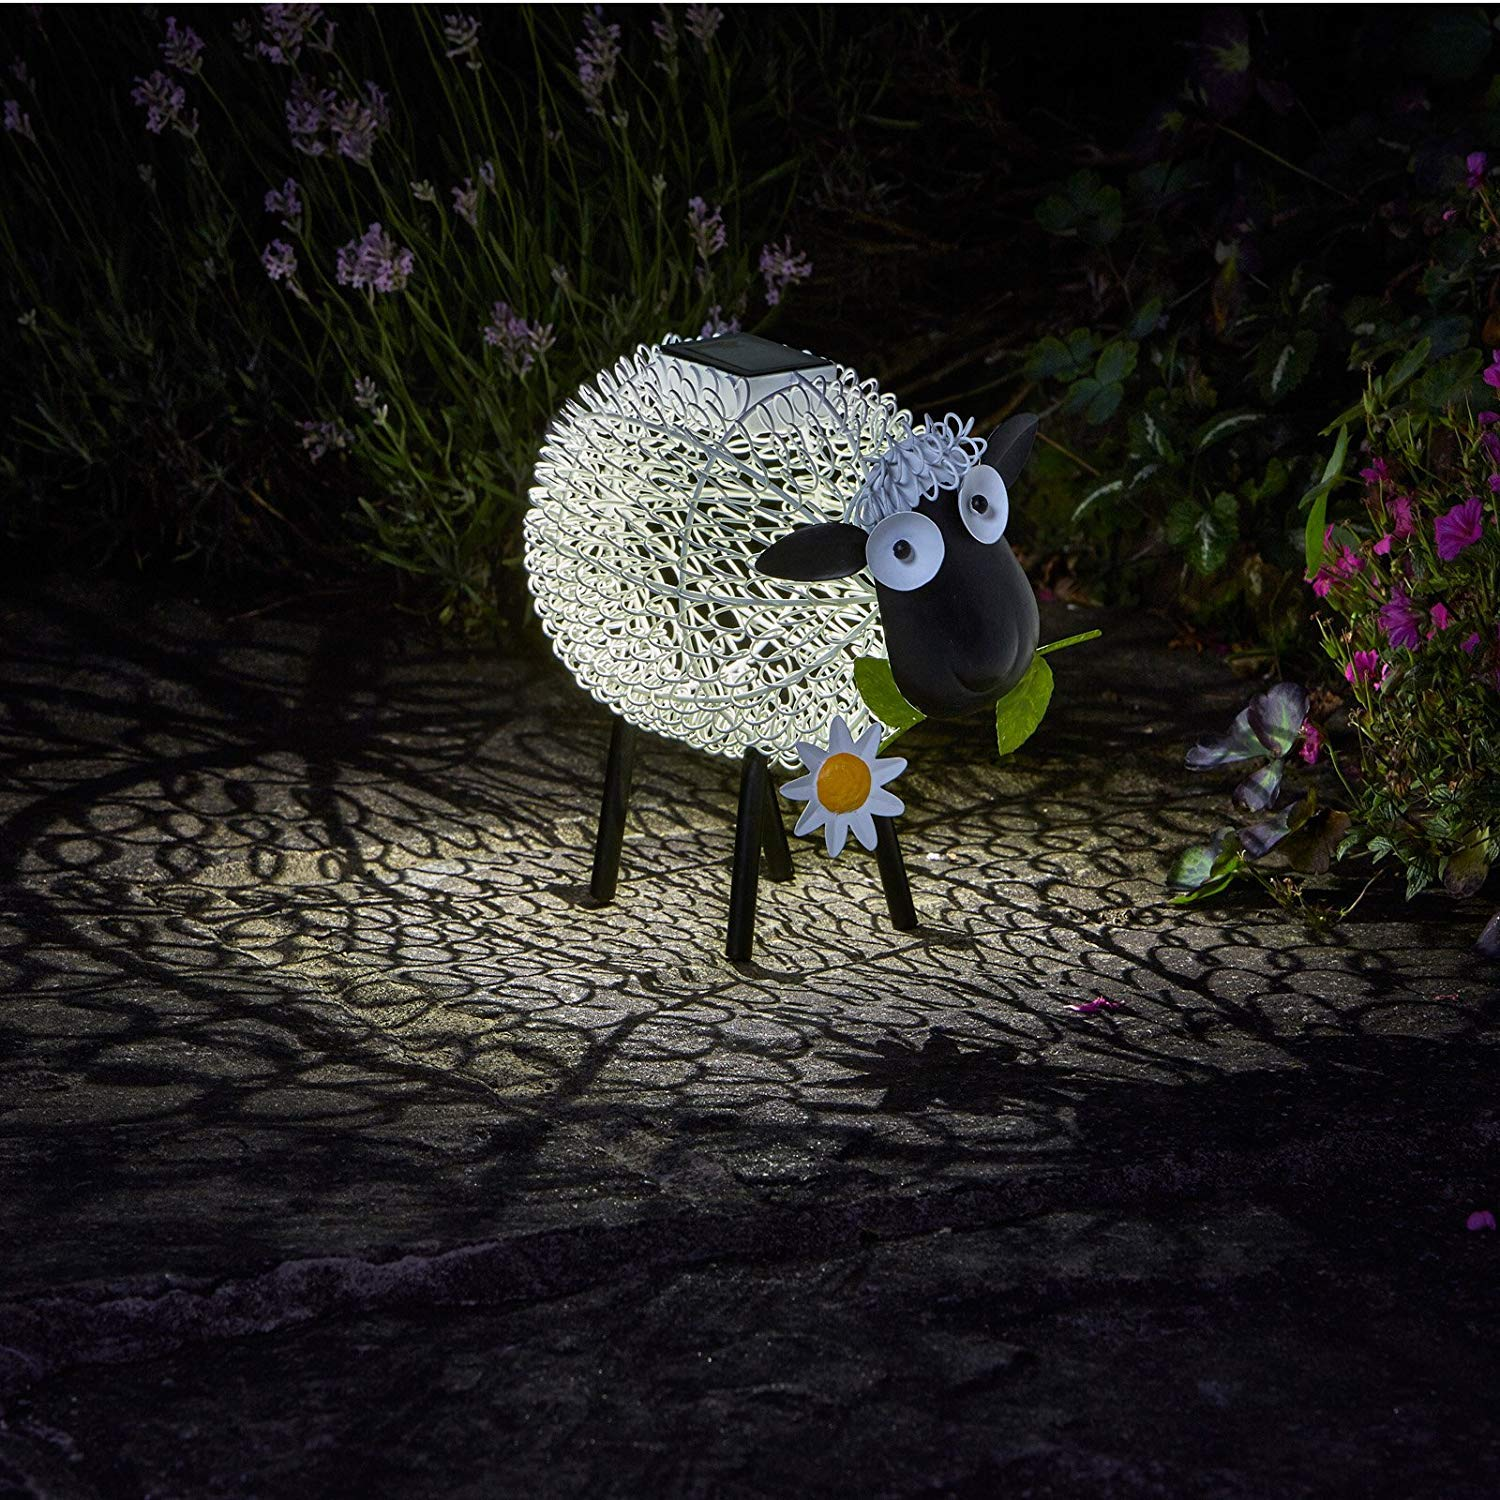 Smart Garden Solar Dolly The Sheep Silhouette Light Garden Light Figure Ornament SPVINP26928